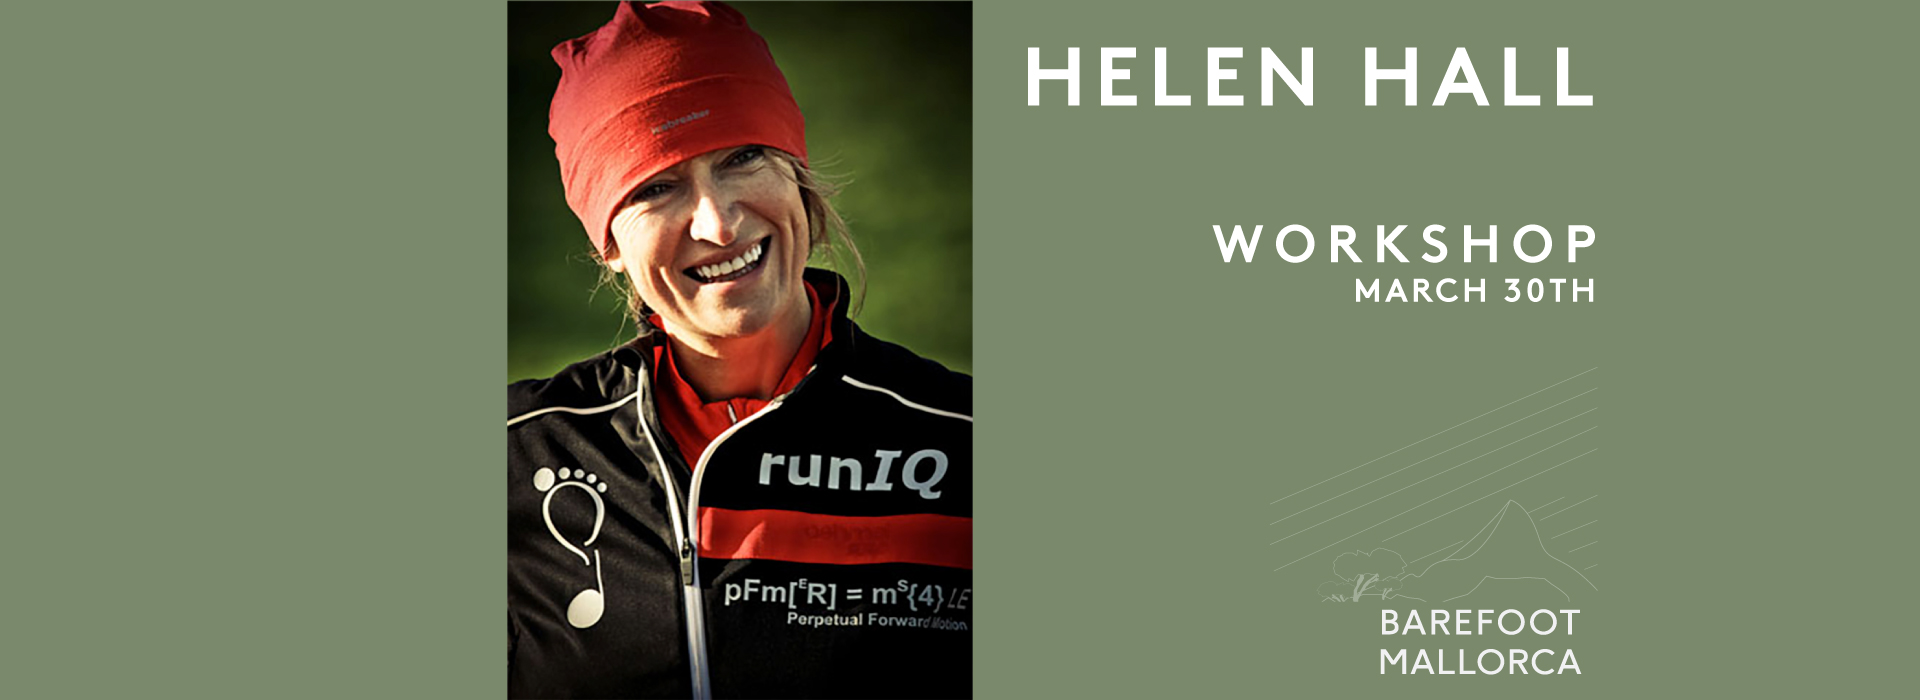 Helen-Hall-Workshop-banner-web.jpg